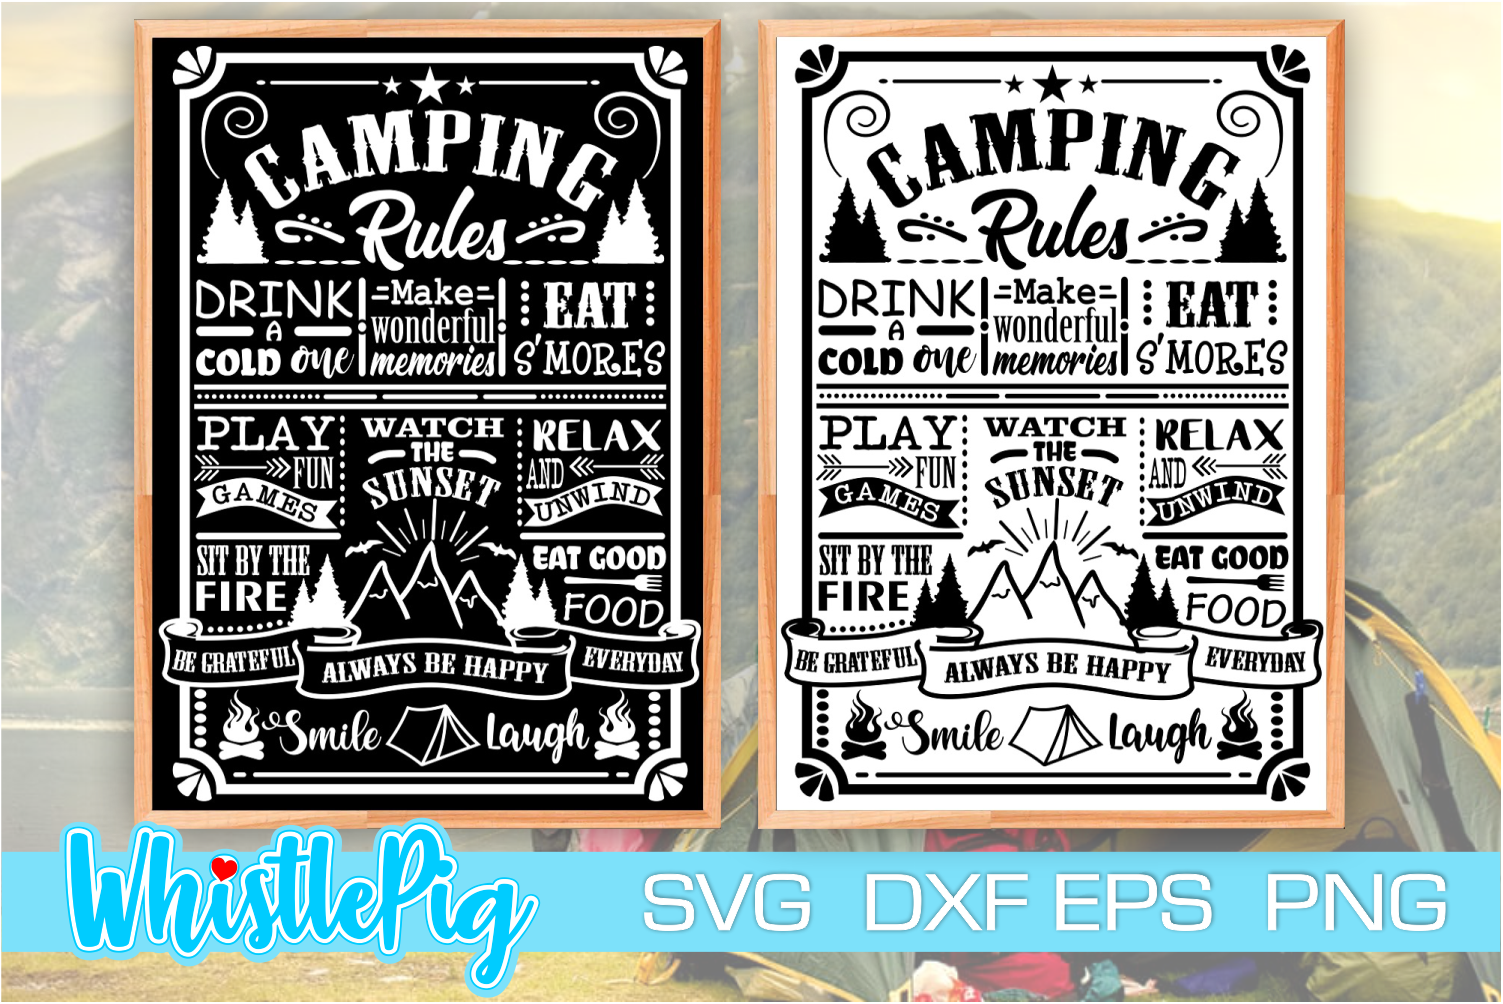 Camping Rules Camper Rules Camping Sign SVG File